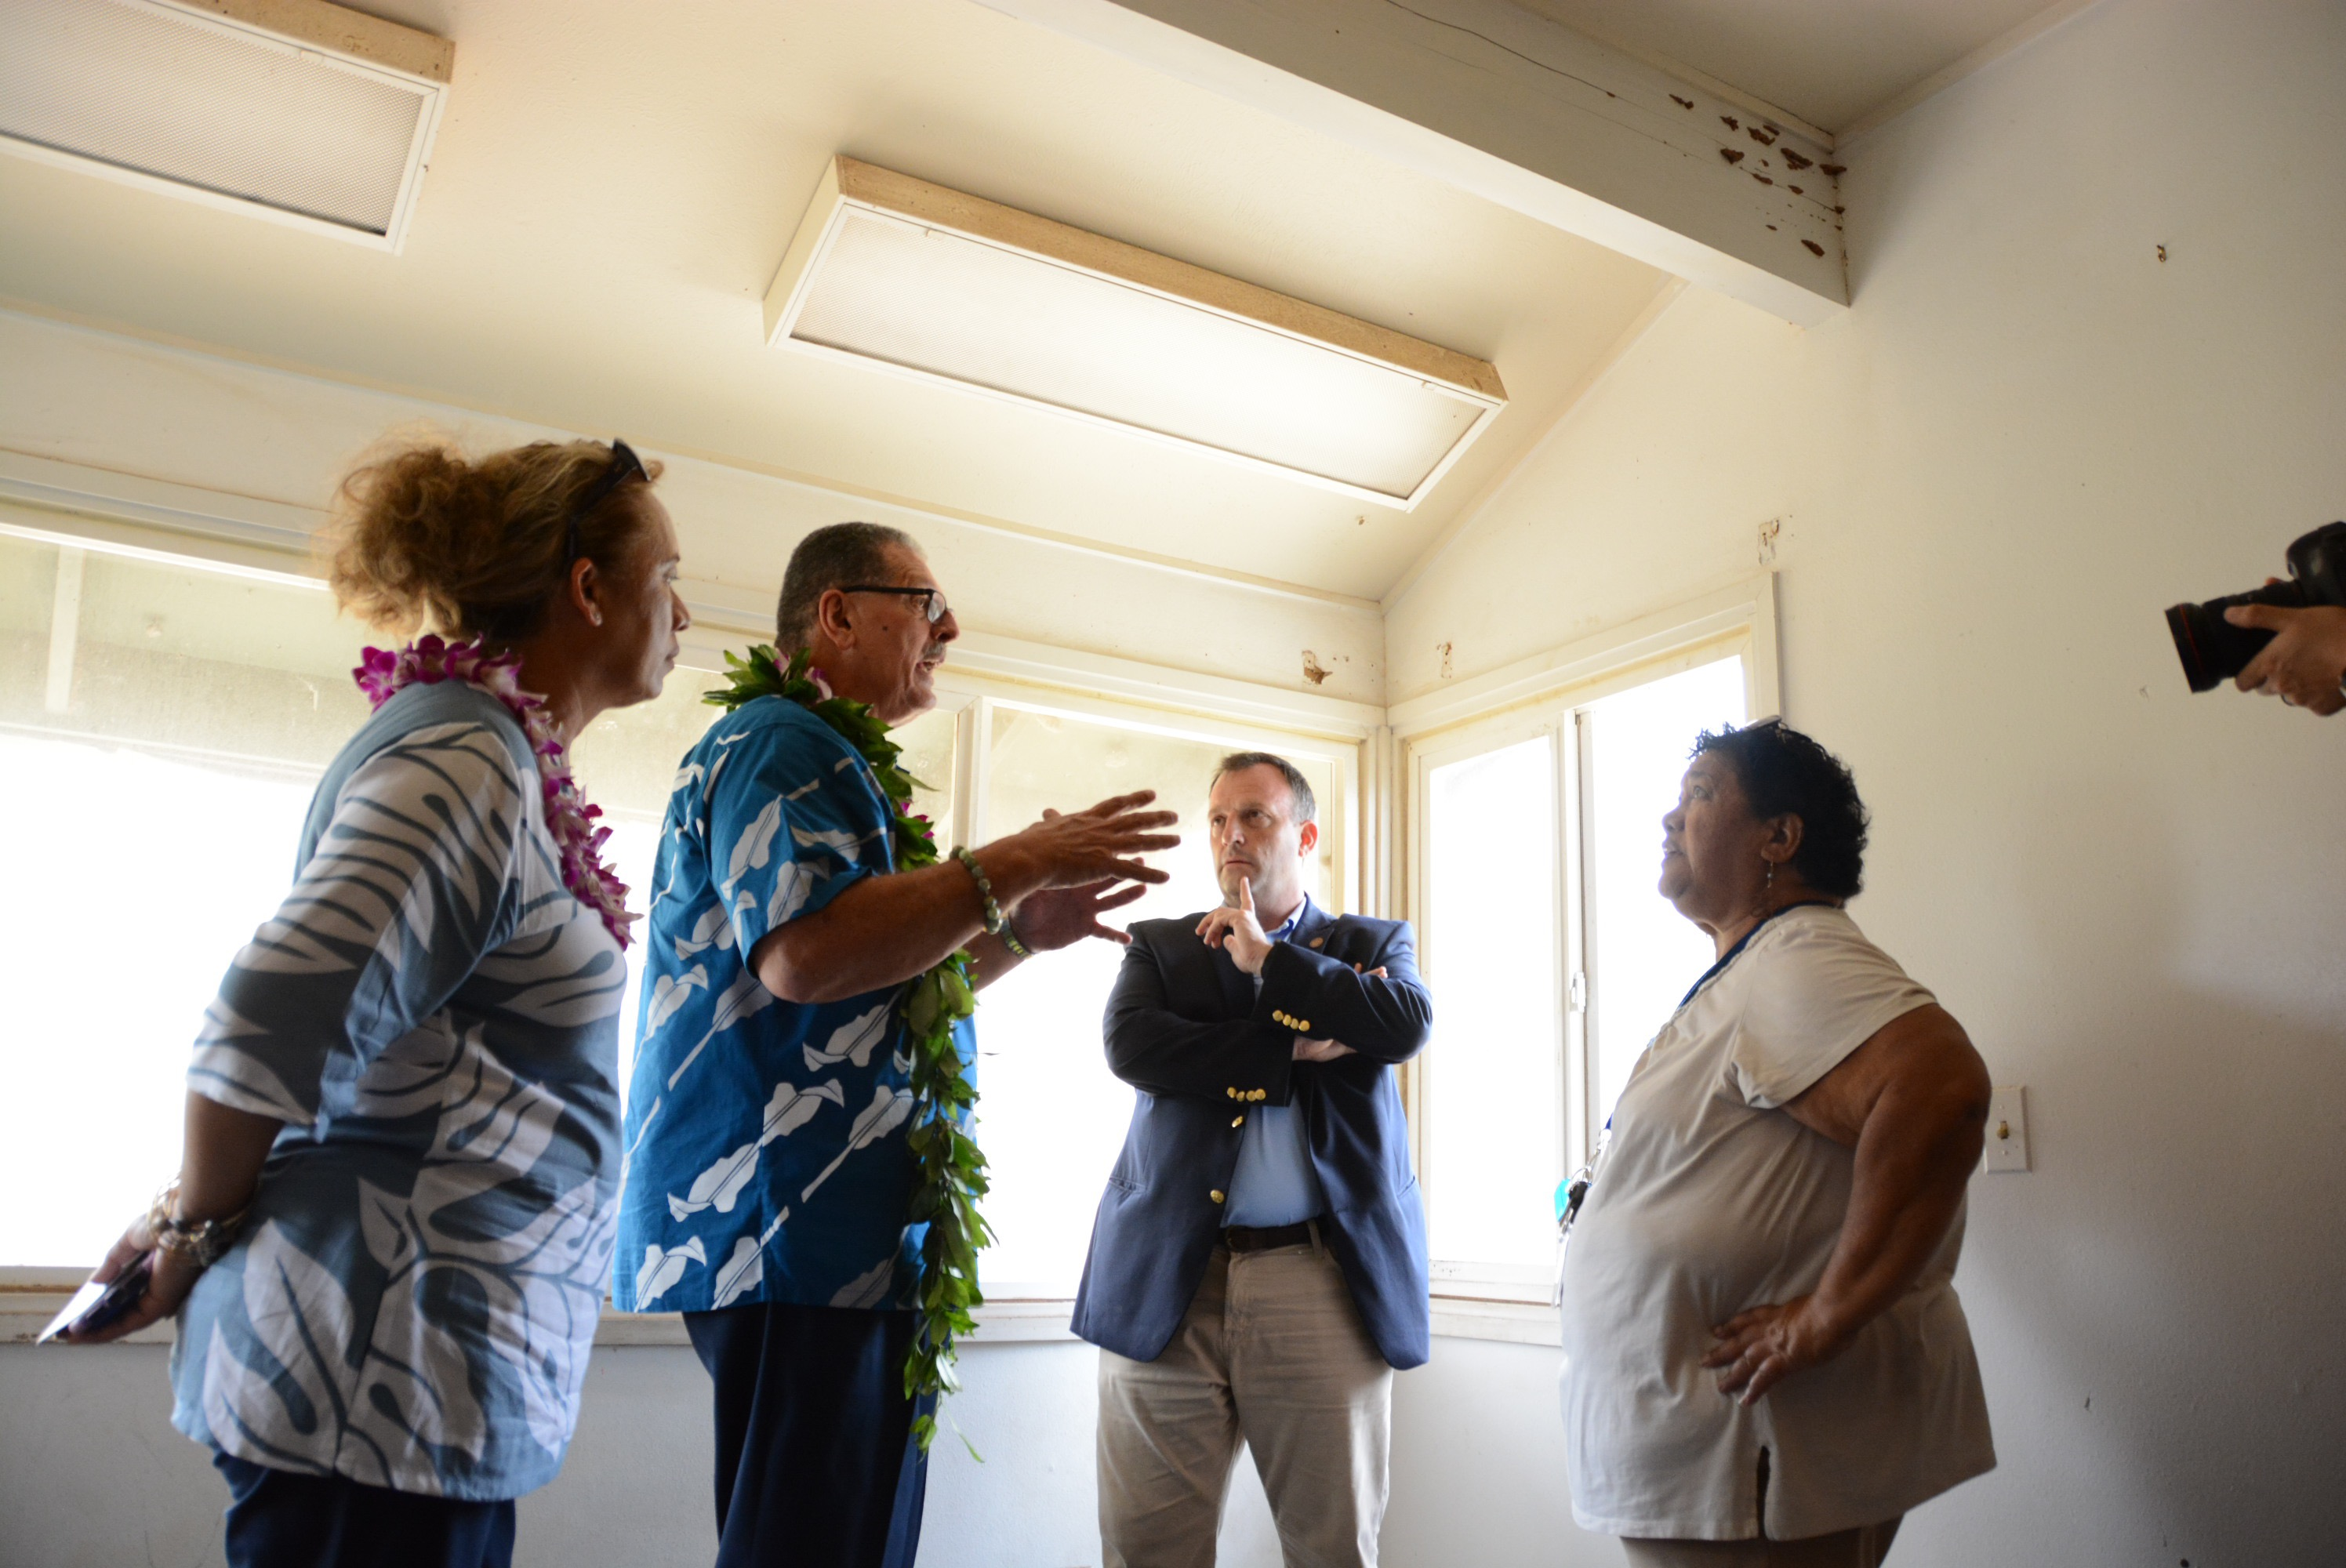 Maui Nui Attainable Housing Forum, Oct. 15-16